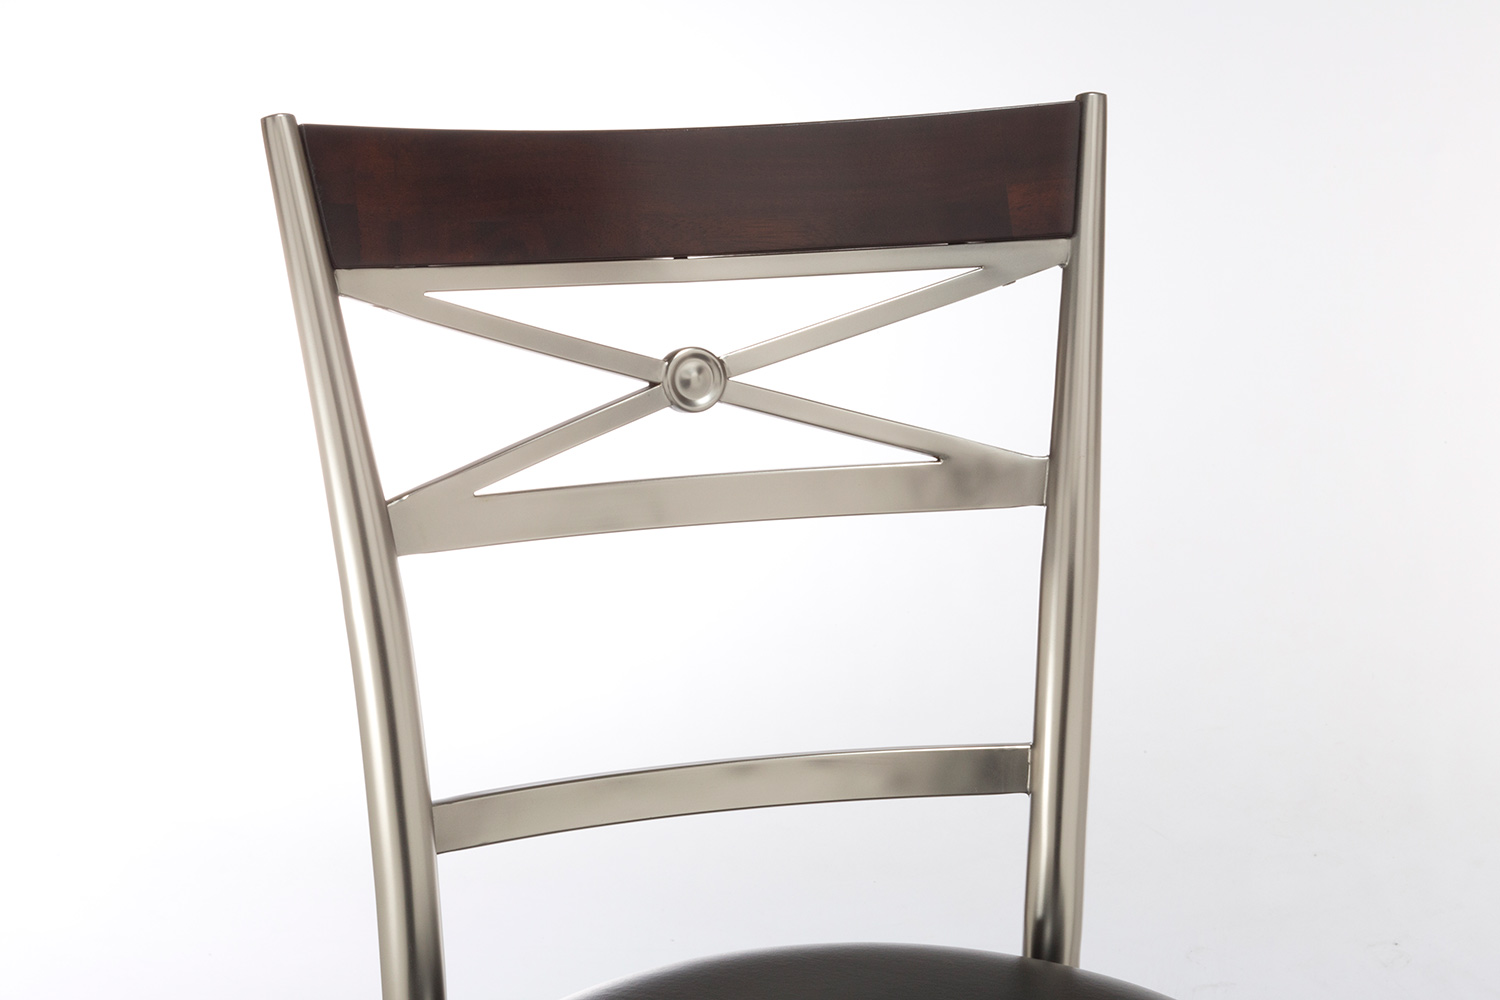 Hillsdale Kilgore Swivel Bar Stool - Dull Nickel